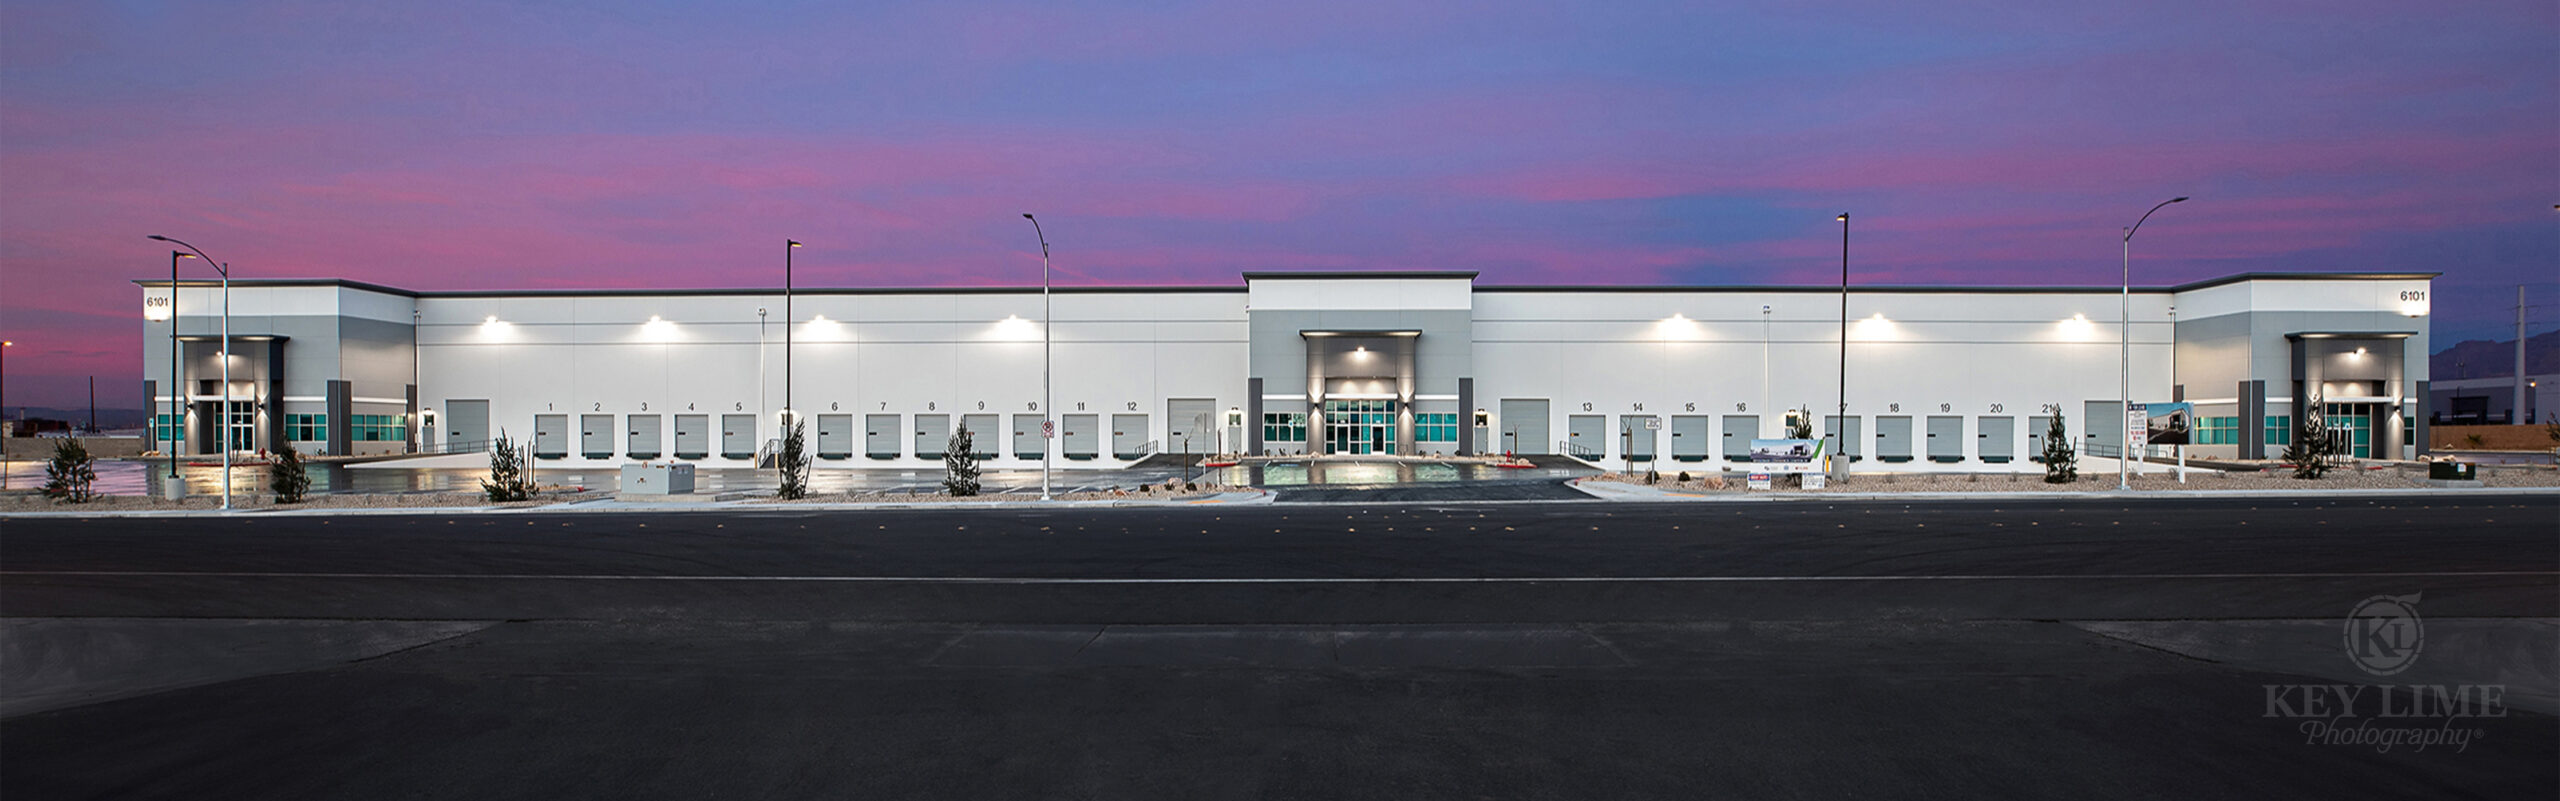 Architectural photo, warehouse, industrial building